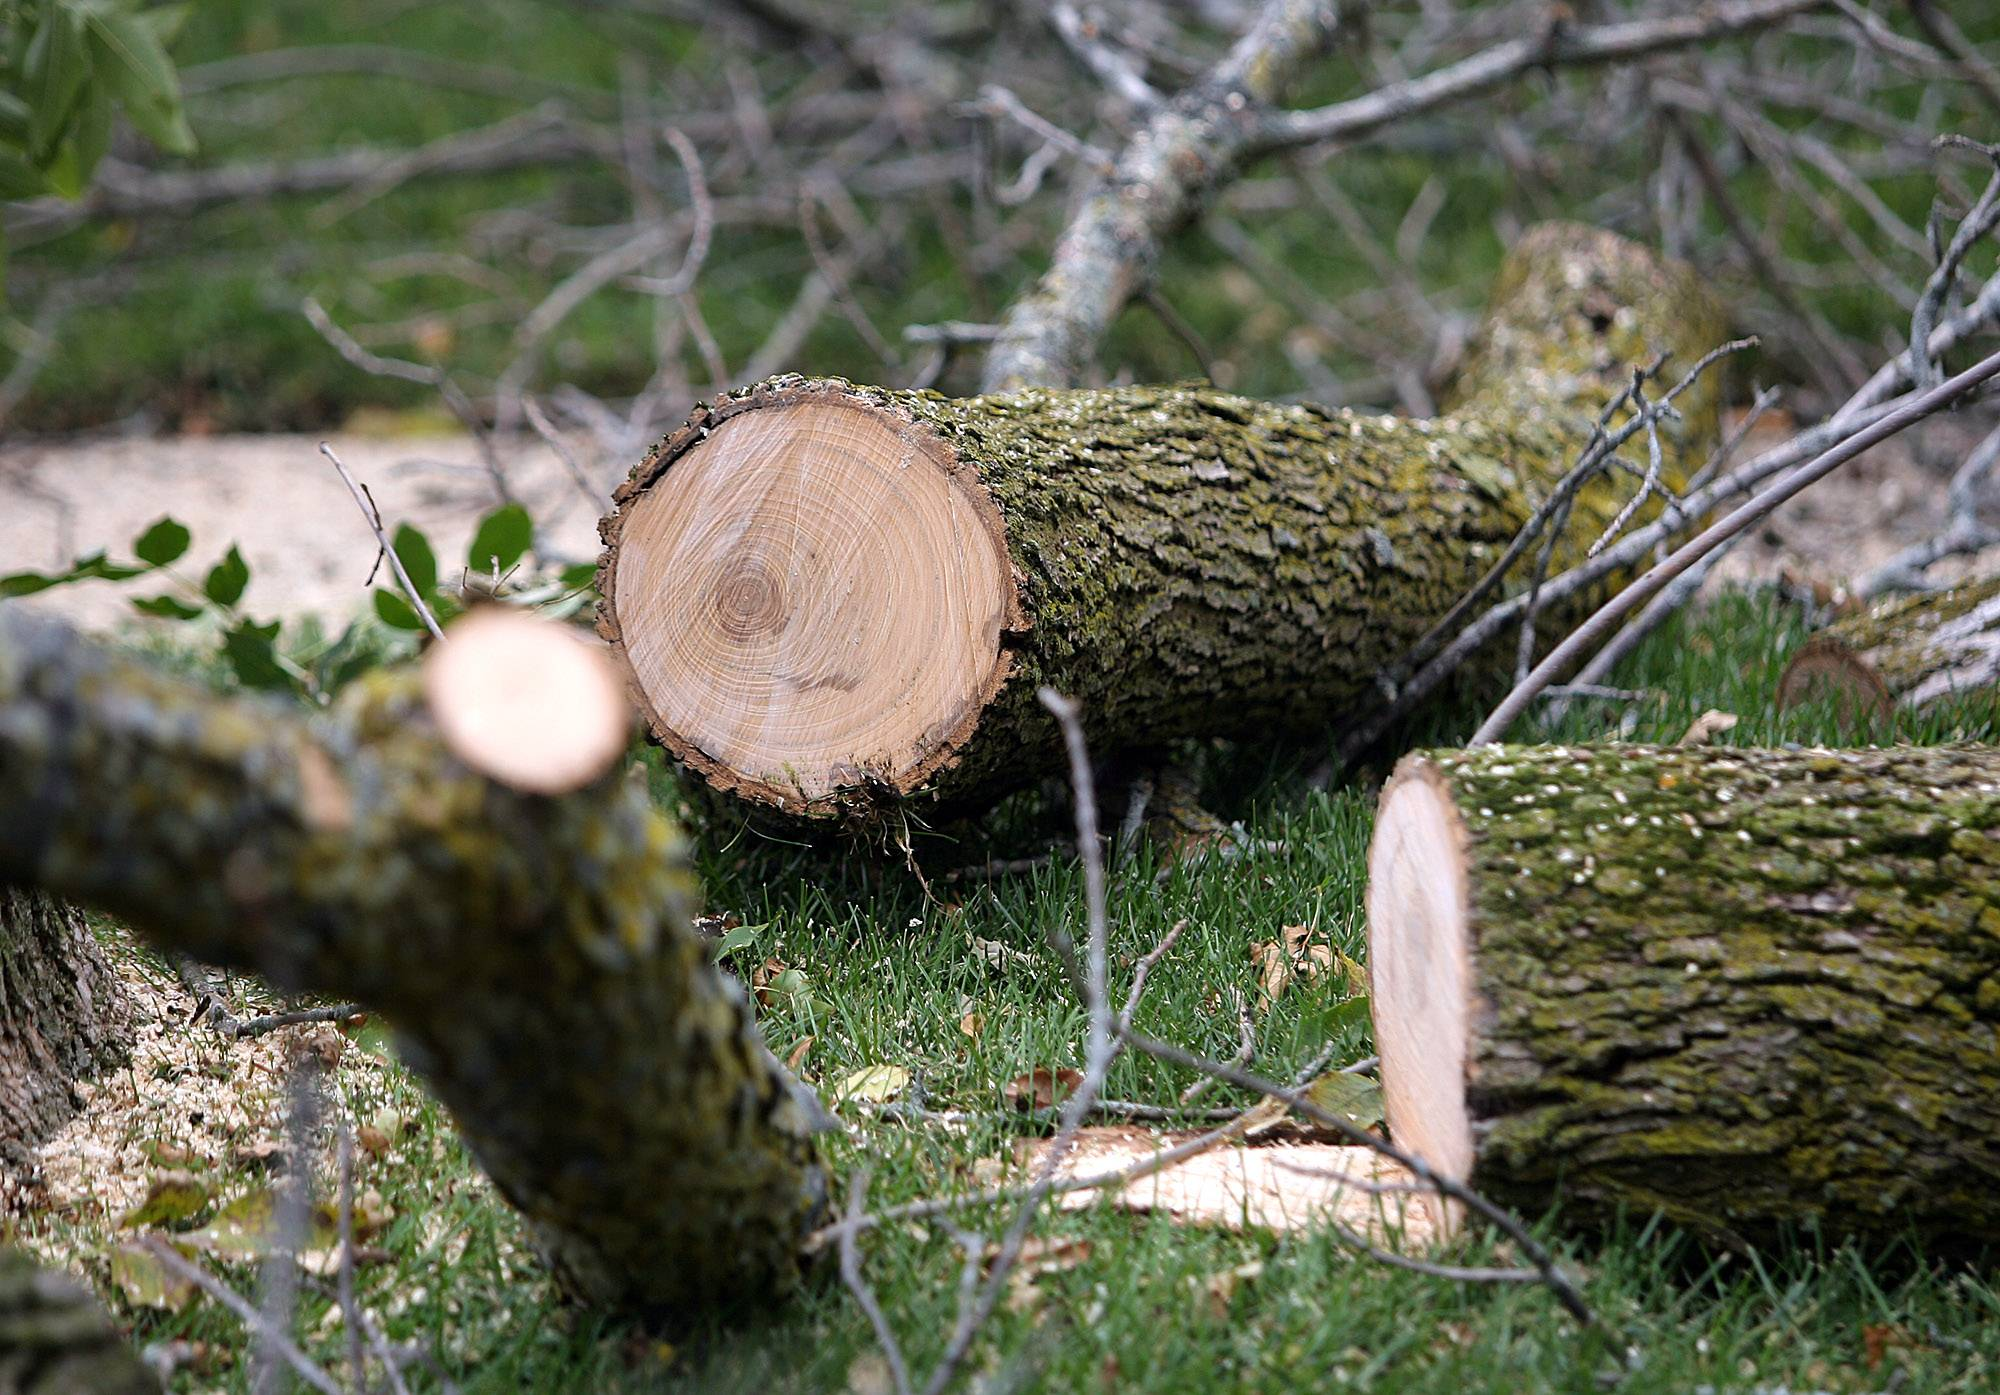 Ash tree removal program in Libertyville expected to last a few more years